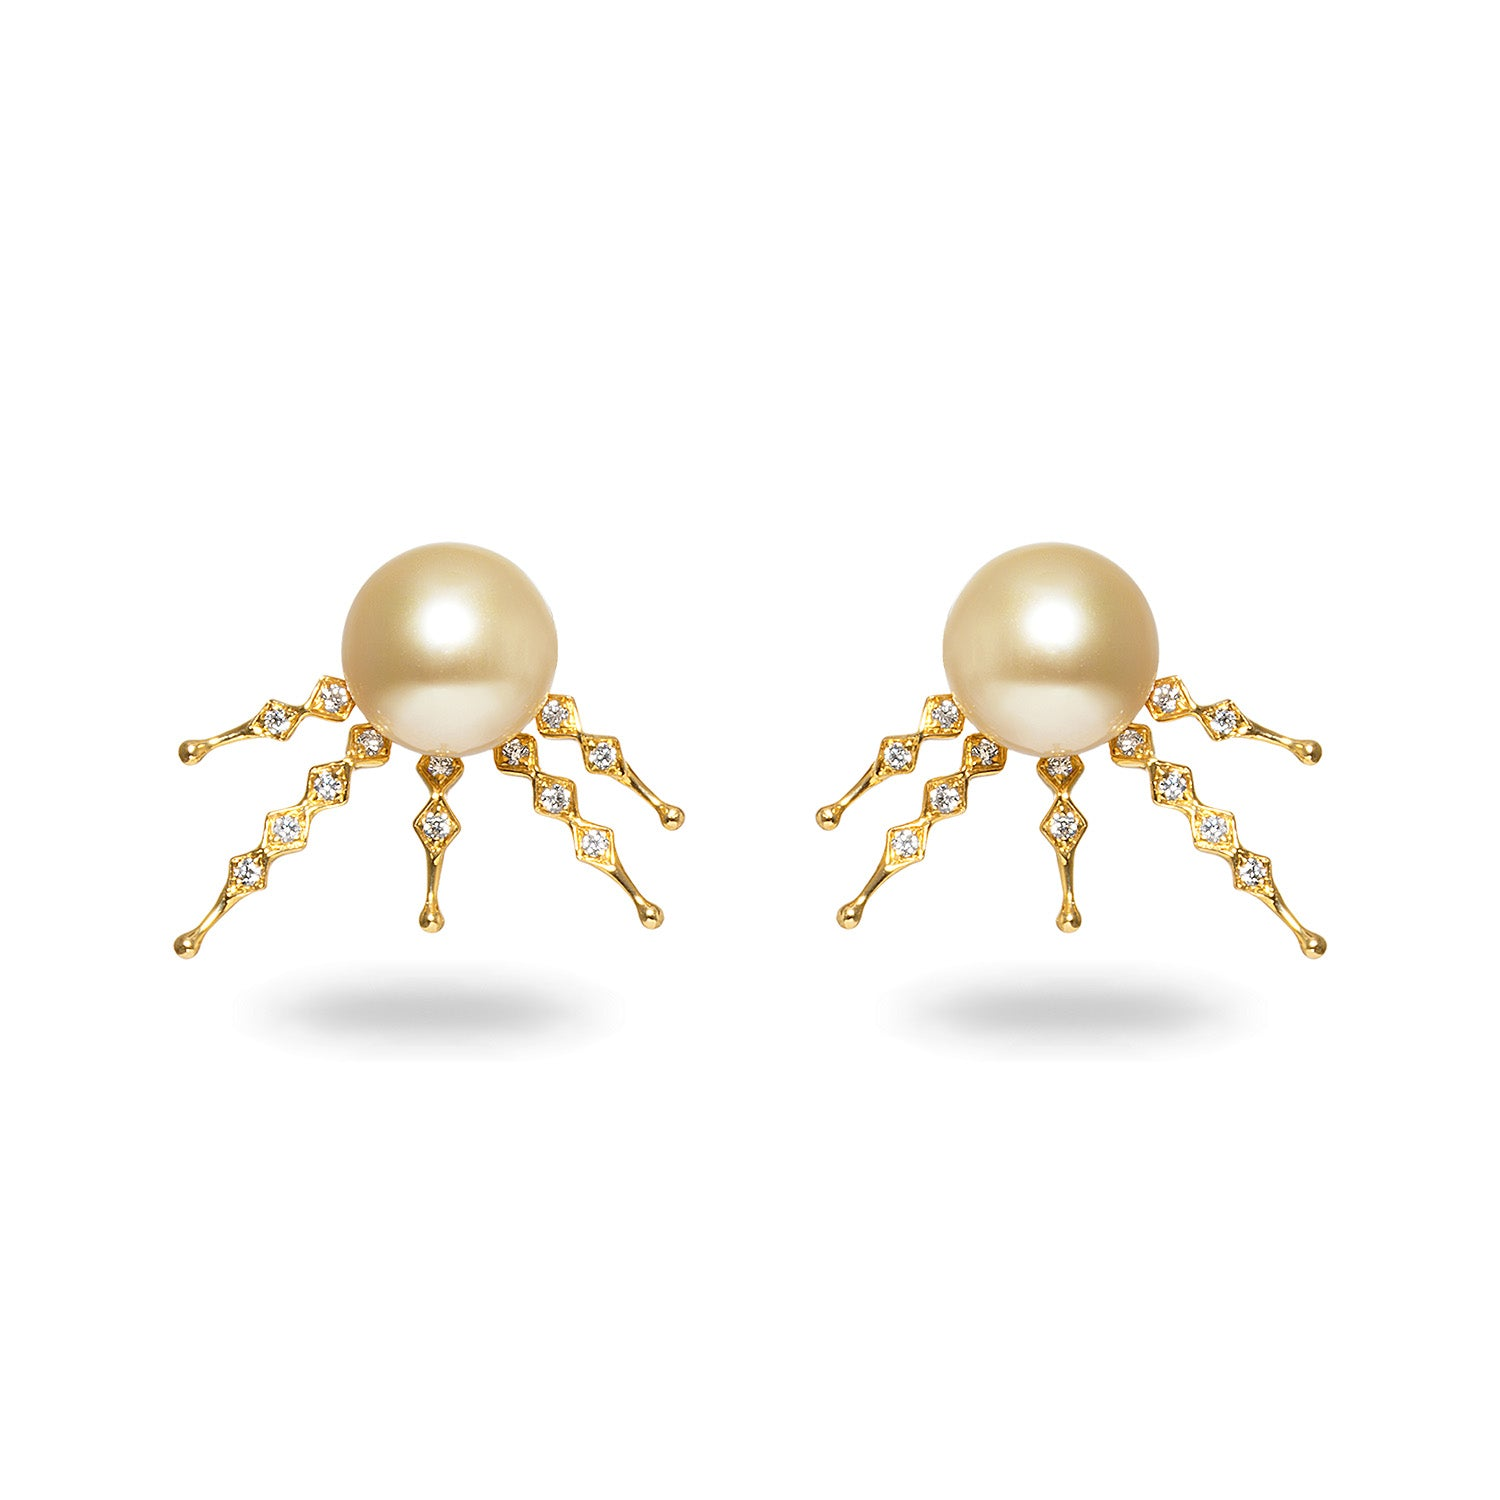 10-11mm Golden South Sea Pearl and Diamond Earrings